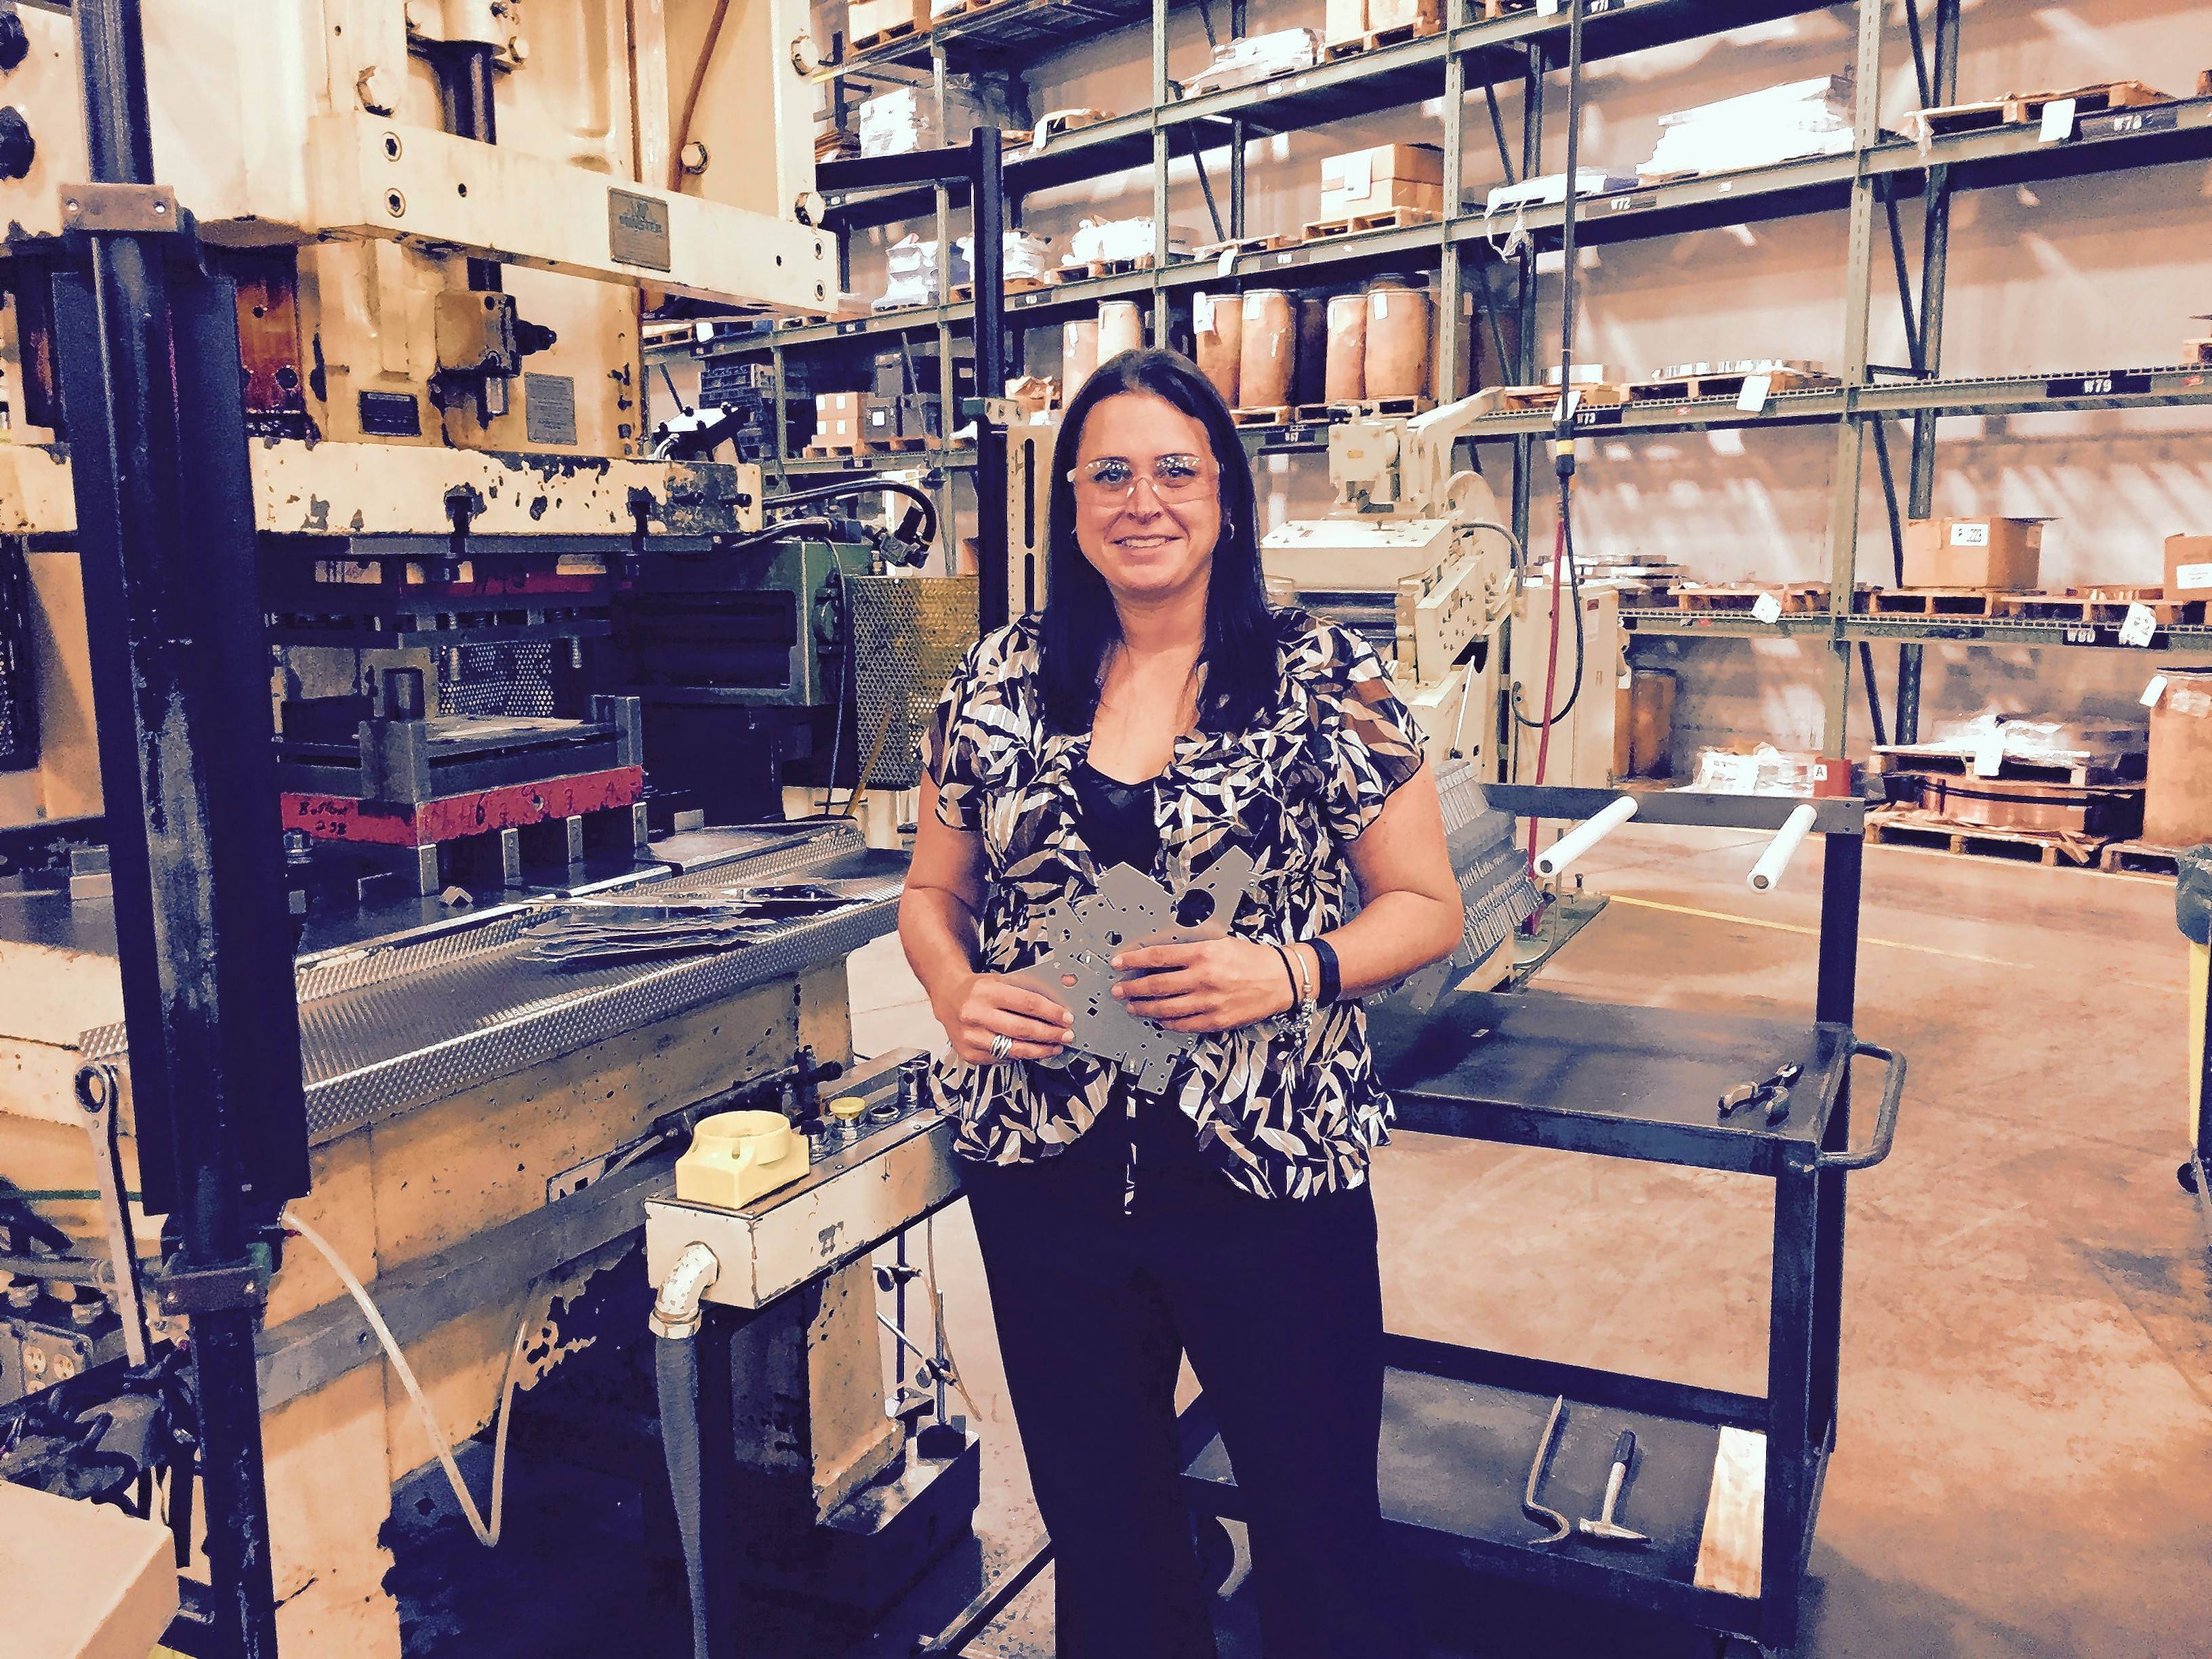 Erica Wiegel of Elk Grove Village now leads Aro Metal Stamping Inc. in Roselle. She left her family-owned Wiegel Tool Works in Wood Dale to go on her own.